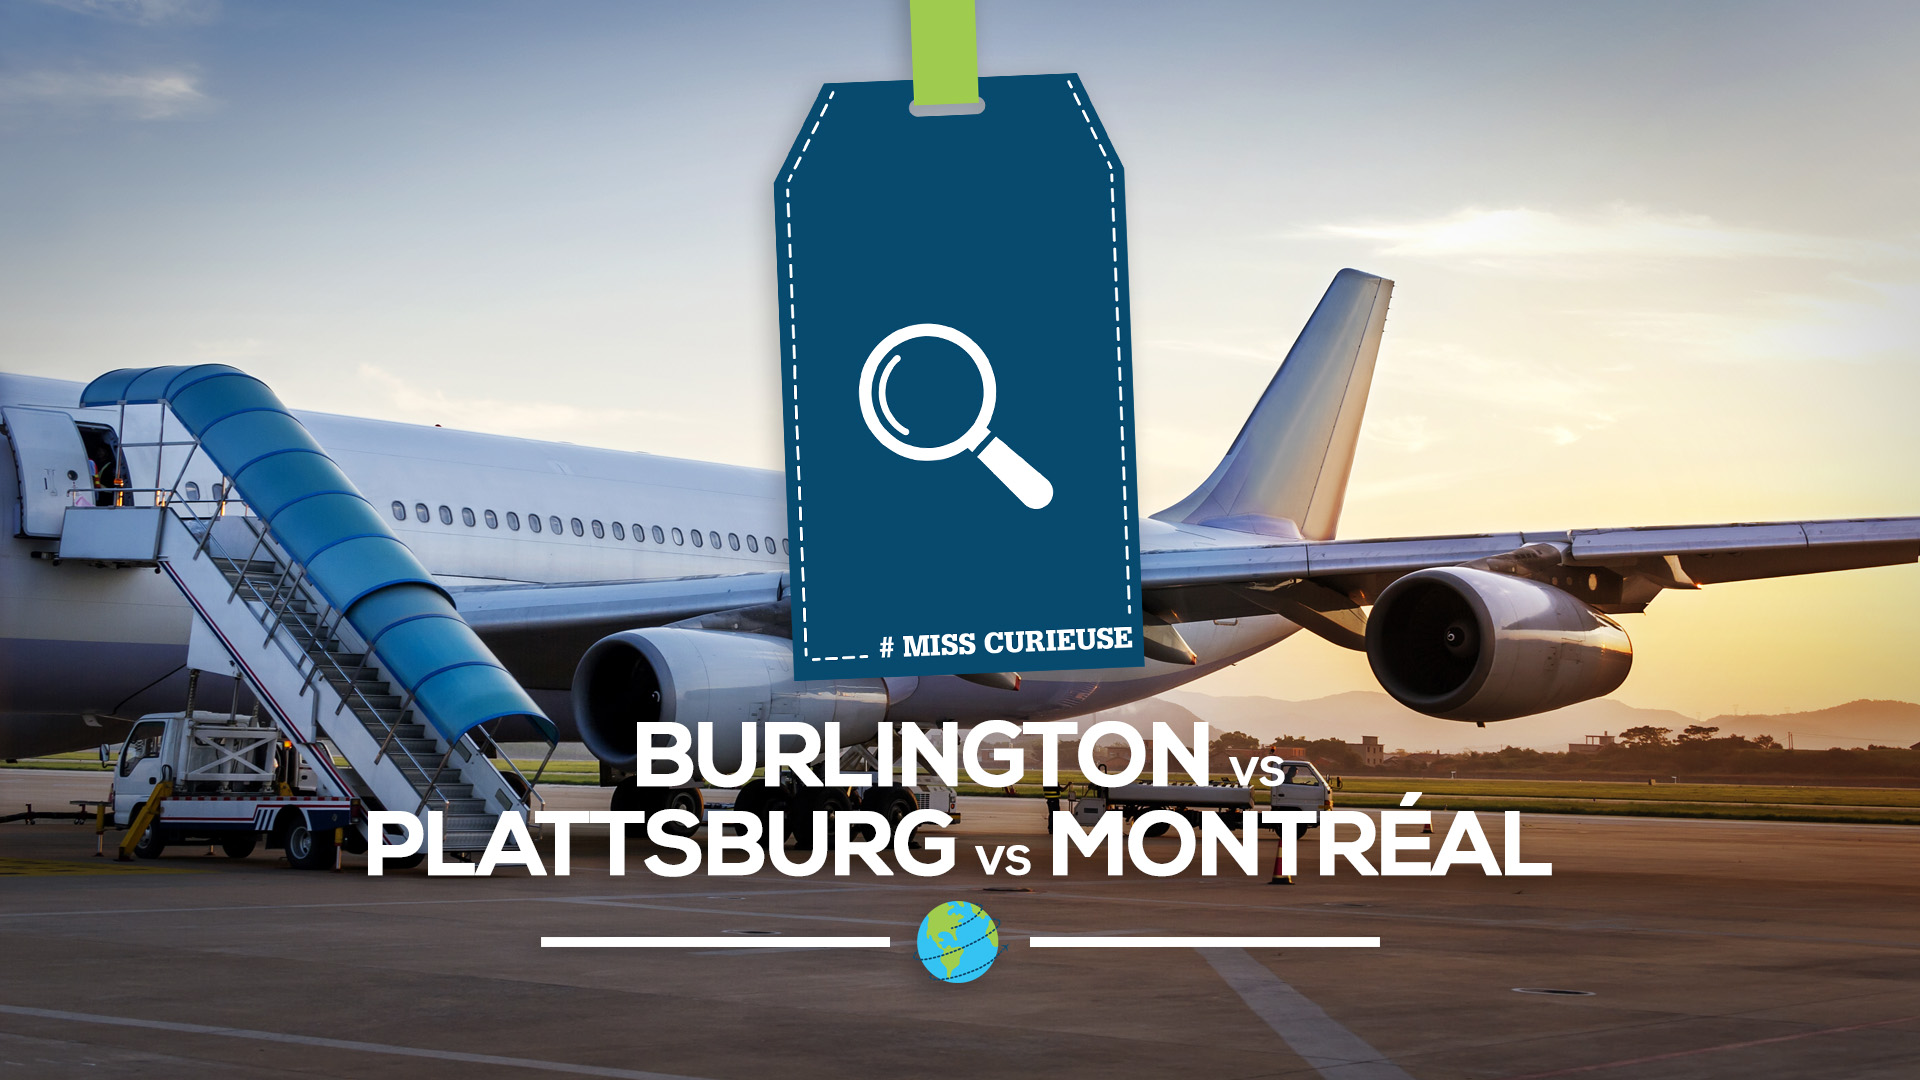 Burlington VS Plattsburg VS Montréal